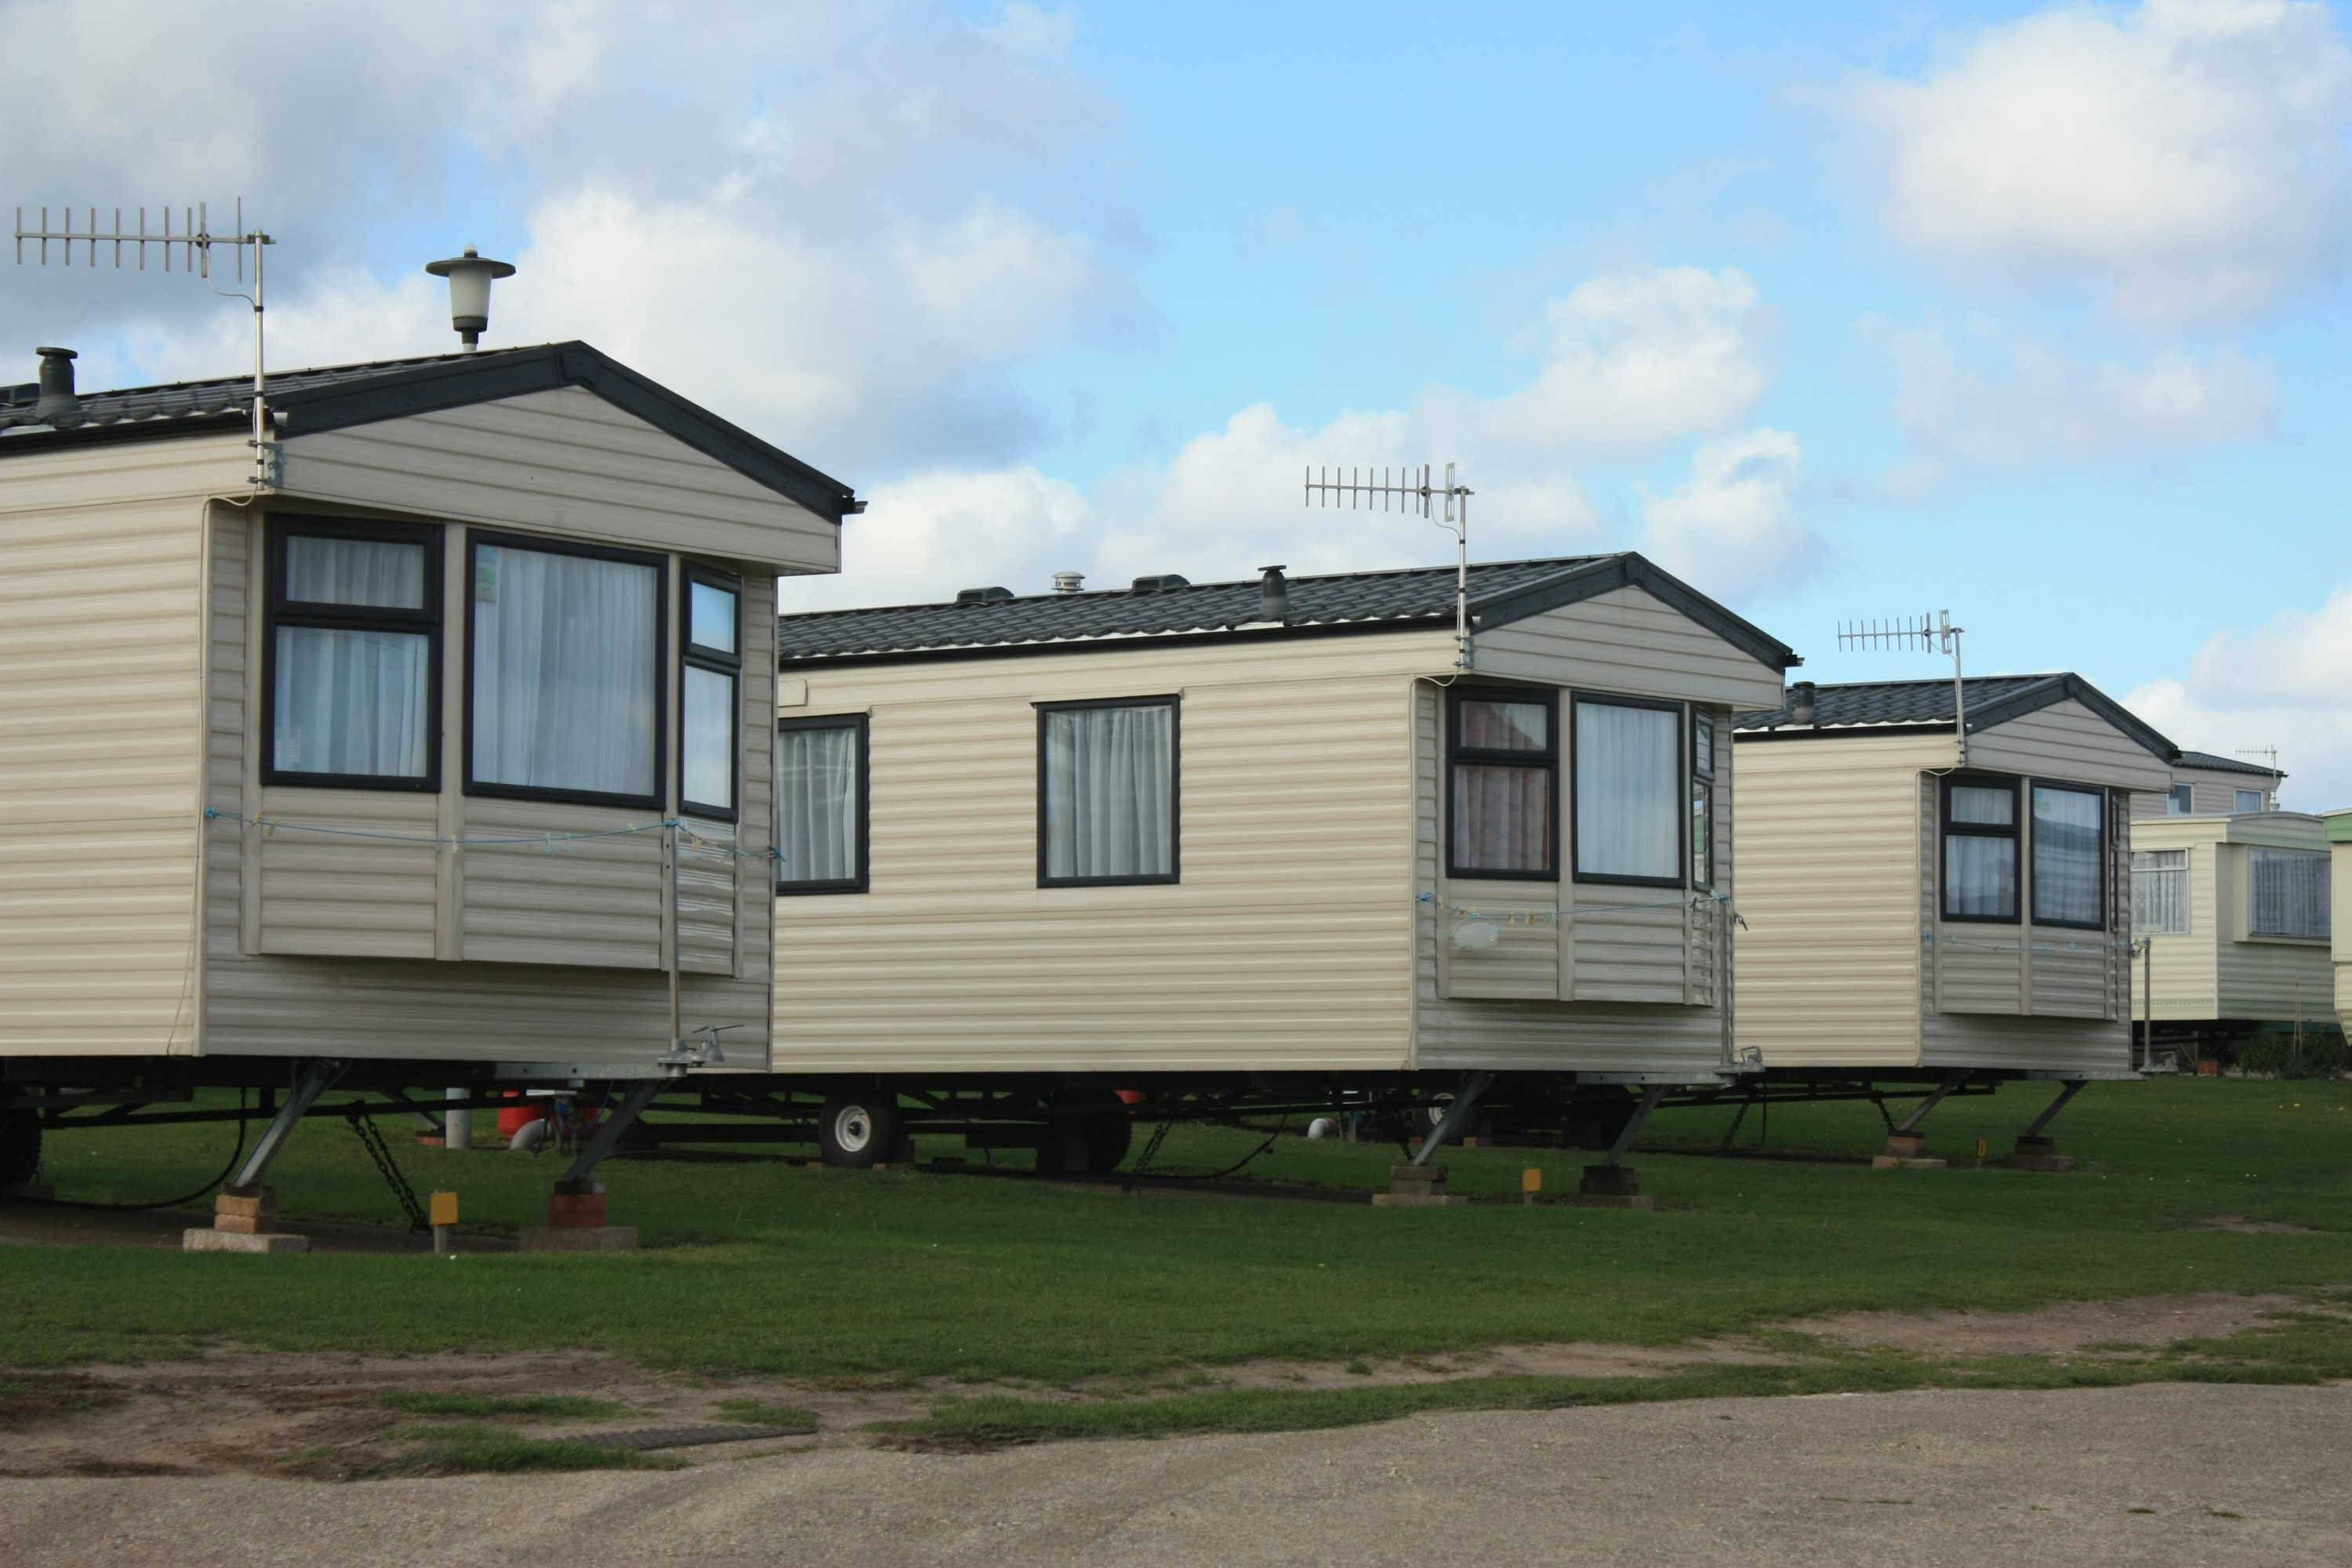 How to Overcome Challenges of Mobile Home Ownership